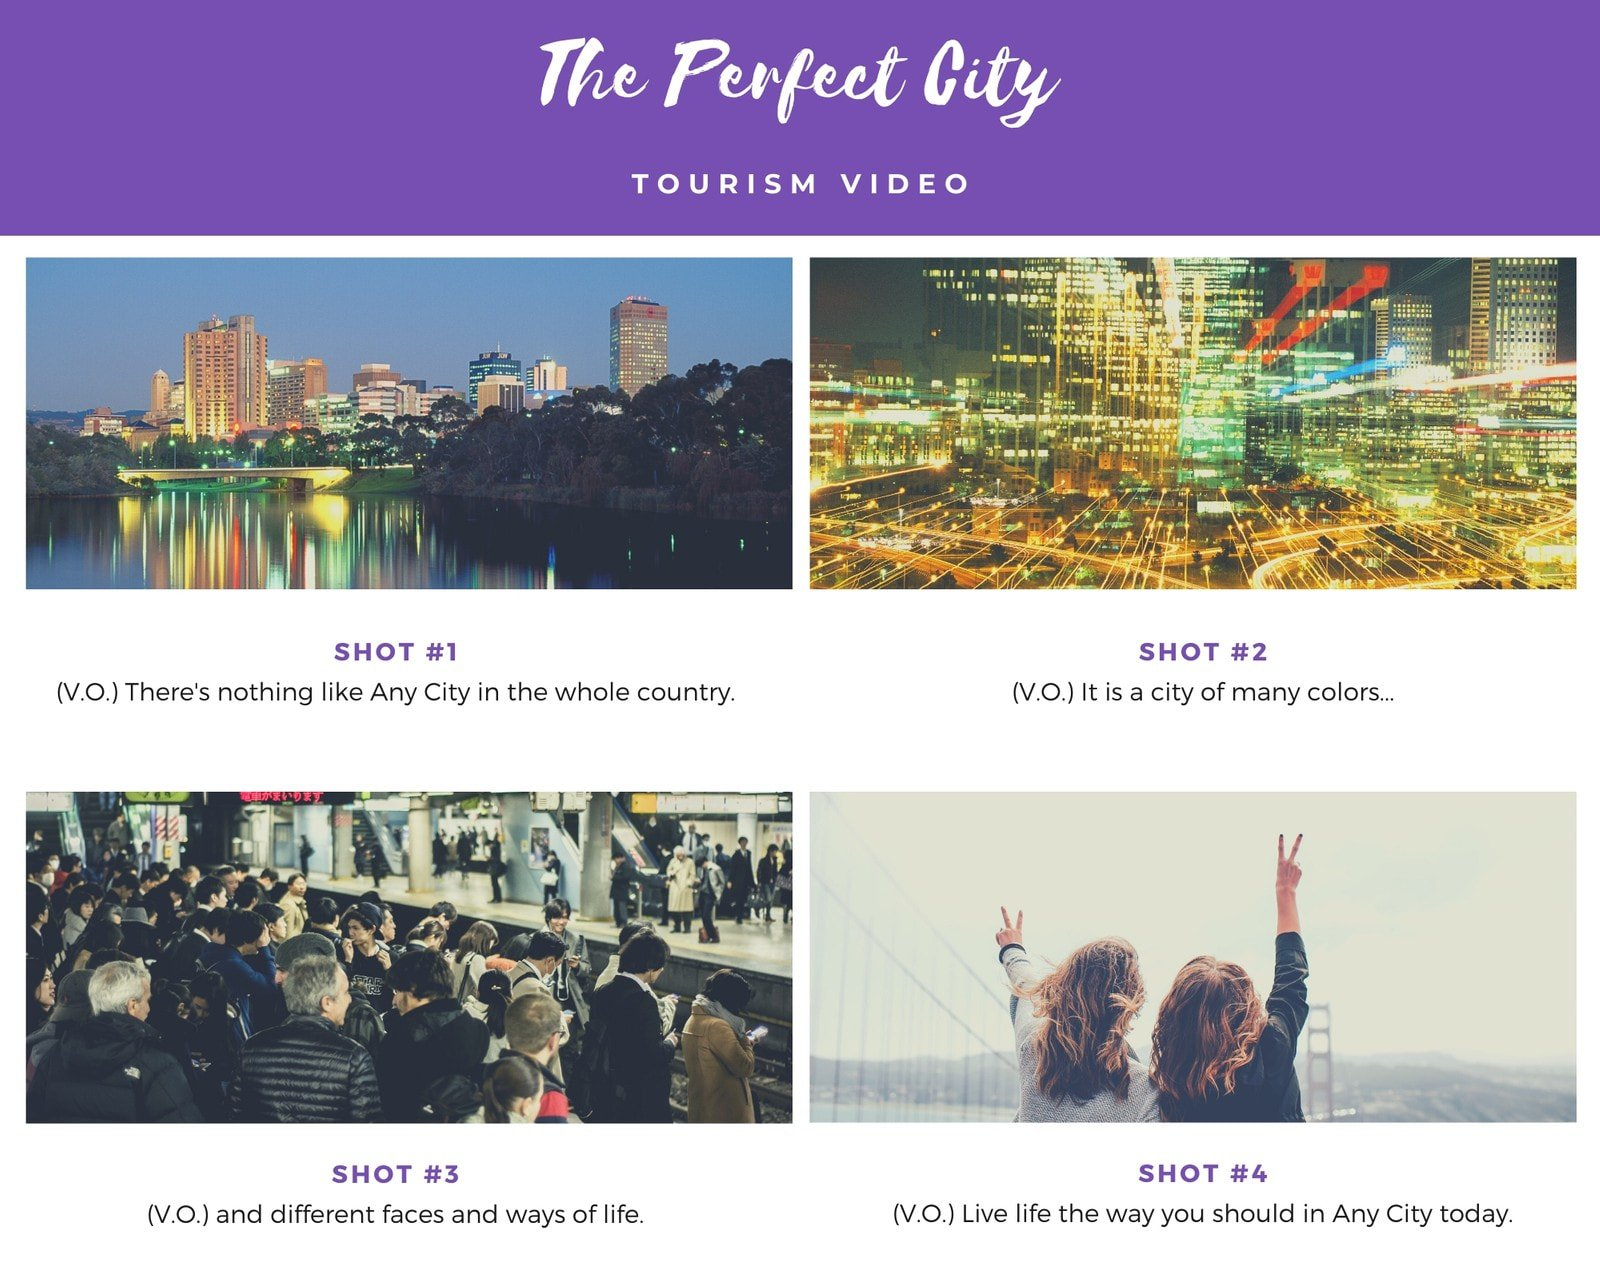 Purple and White Four Panel Storyboard Photo Collage